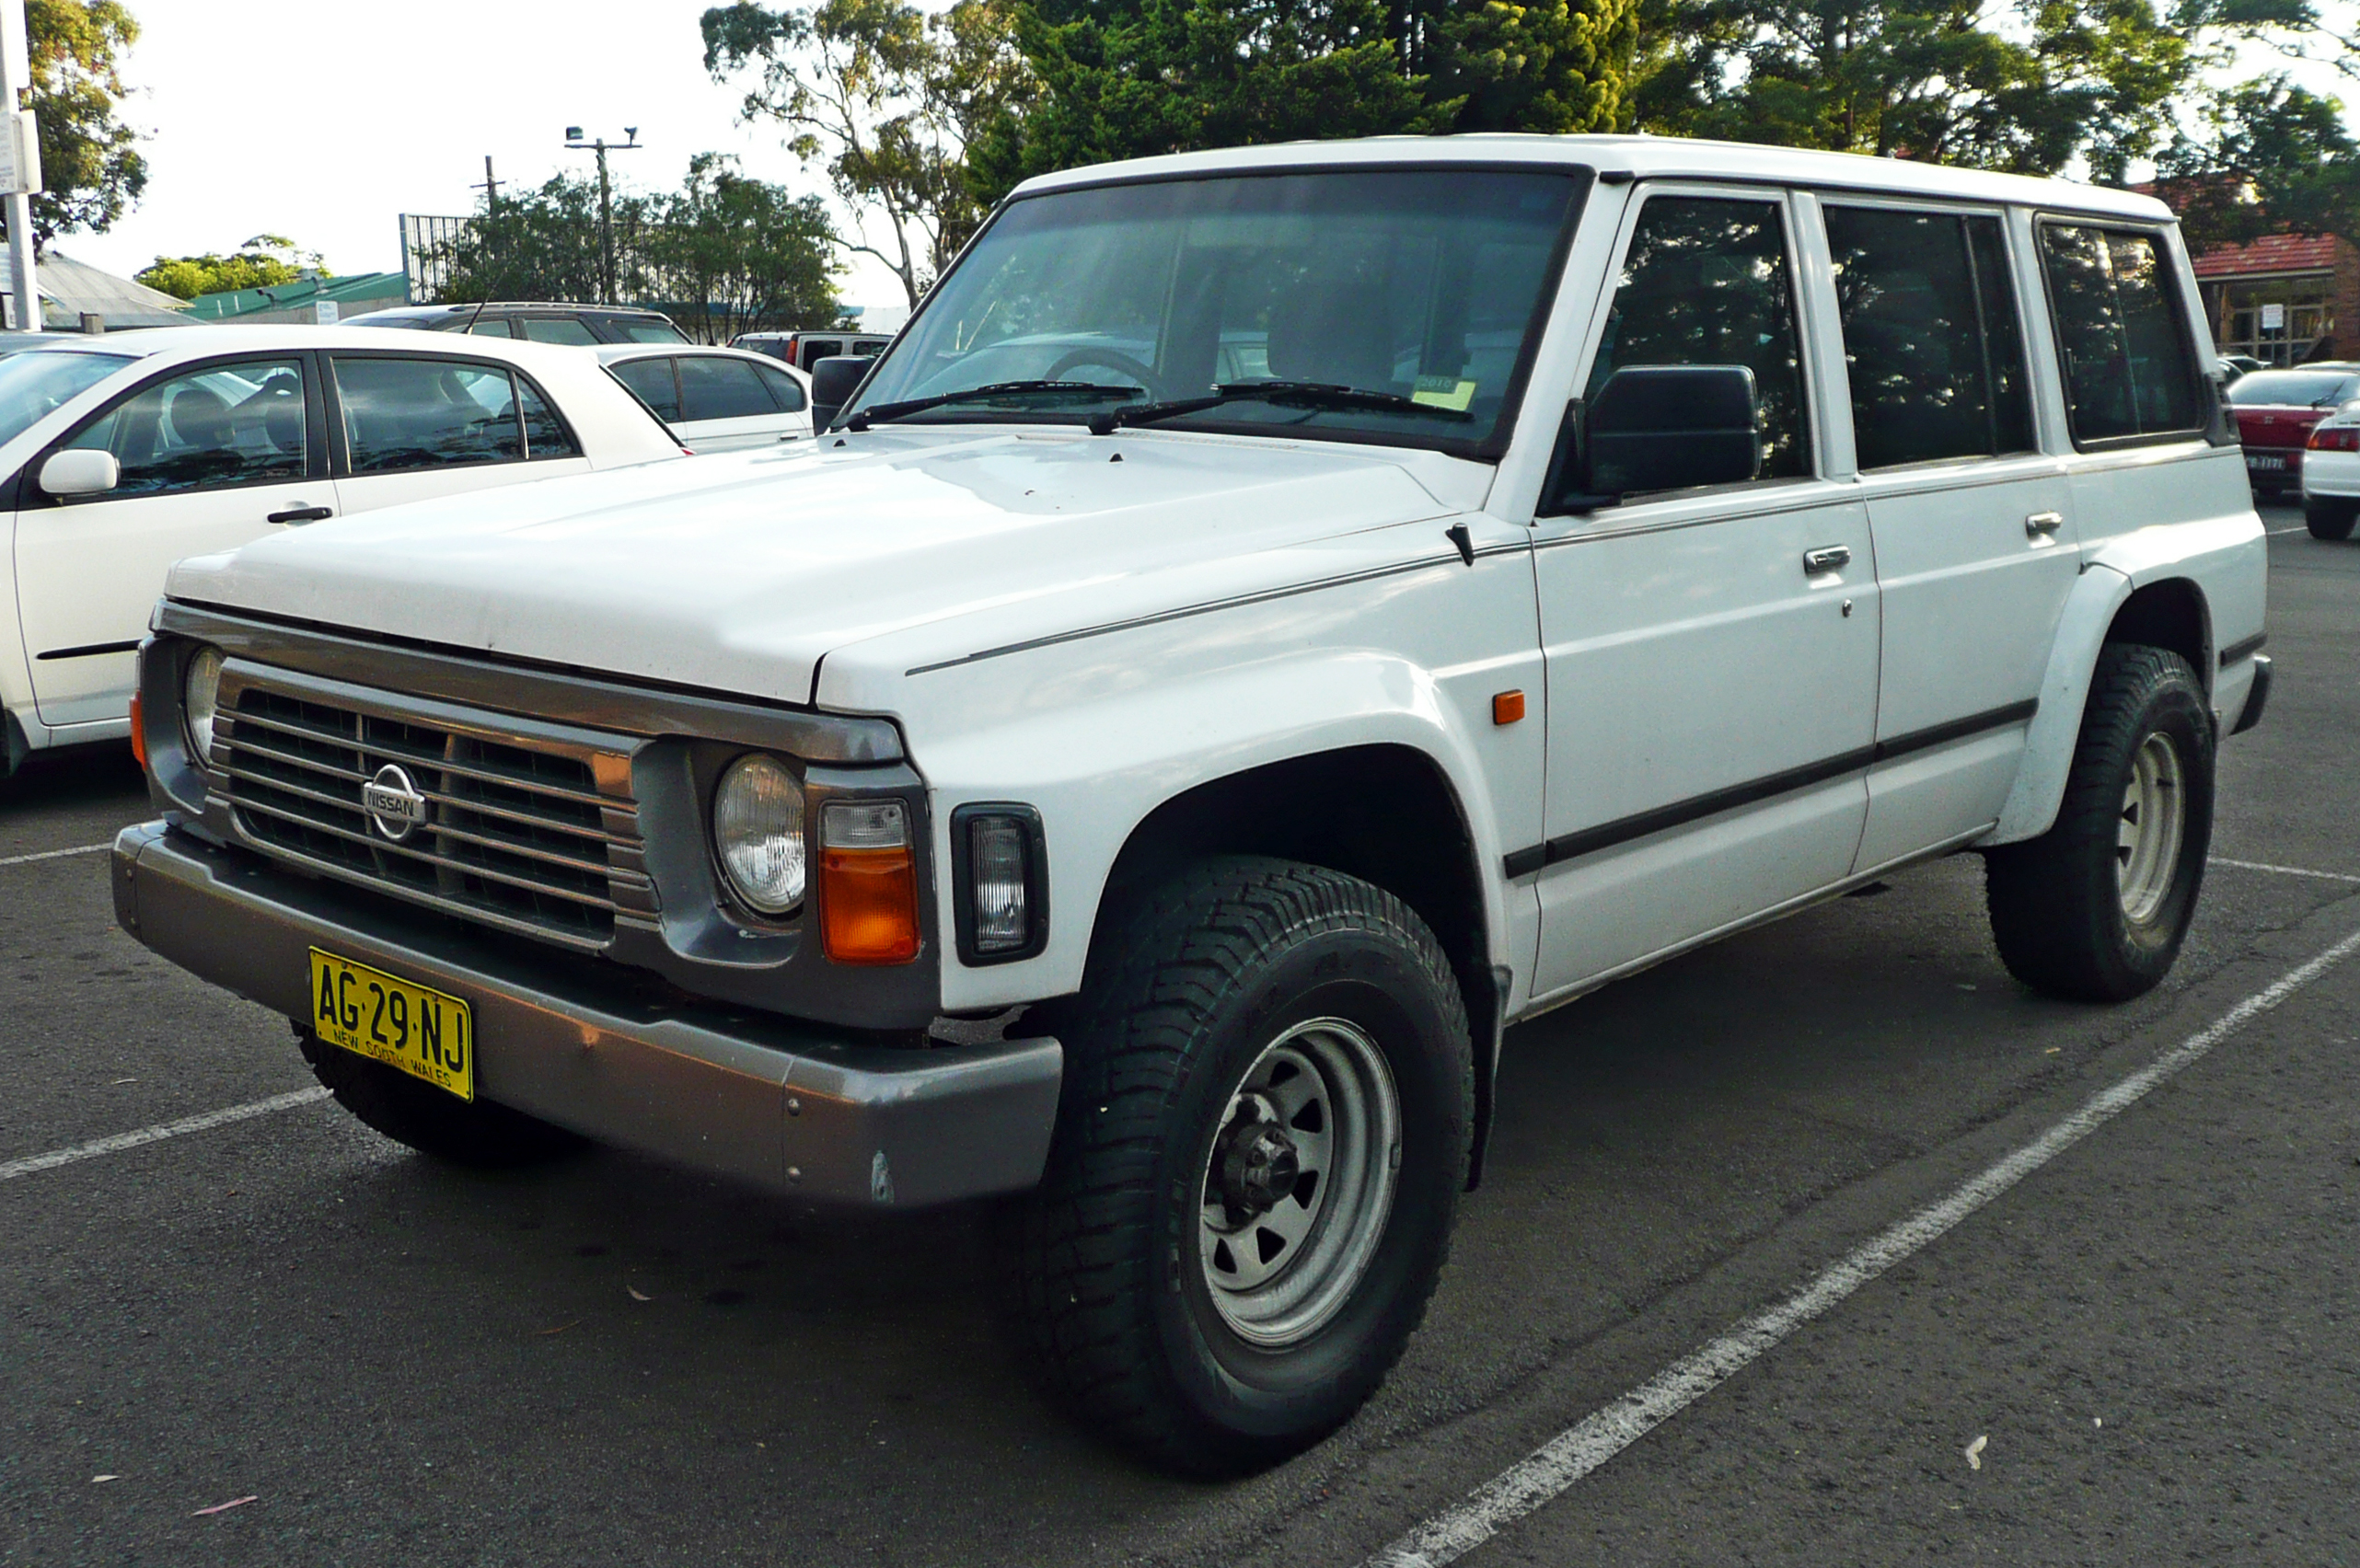 Nissan Safari IV (Y60) 1989 - 1997 SUV 3 door #3